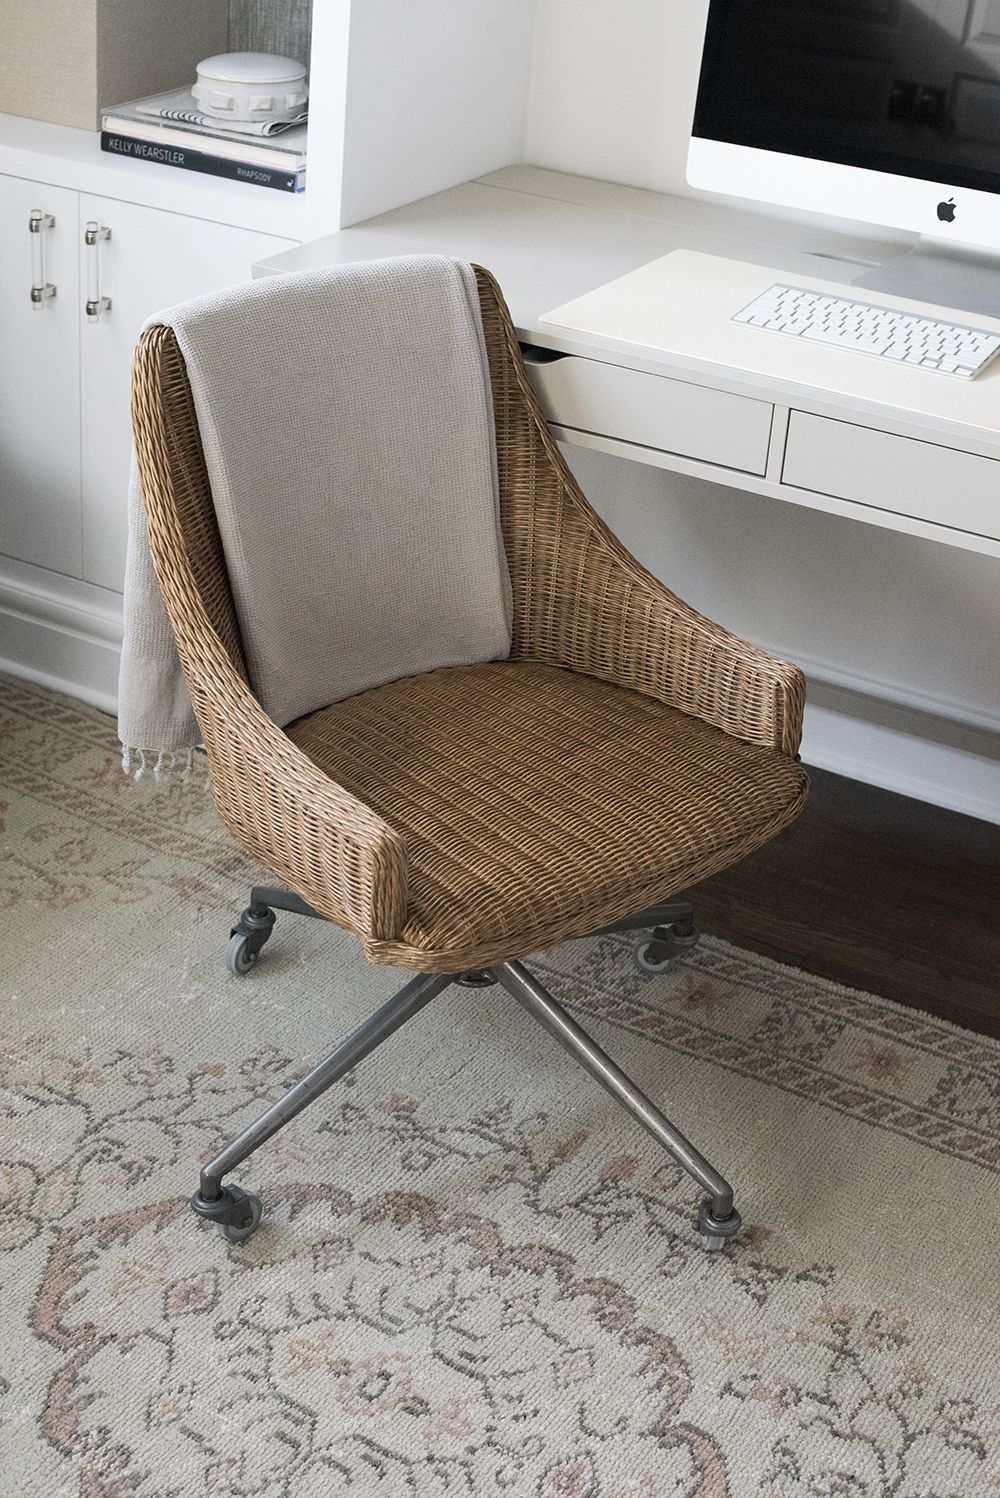 Decals For Baby Room, Shopping Trip World Market Room For Tuesday Blog In 2020 Best Office Chair Desk Chair Comfortable Home Office Chairs